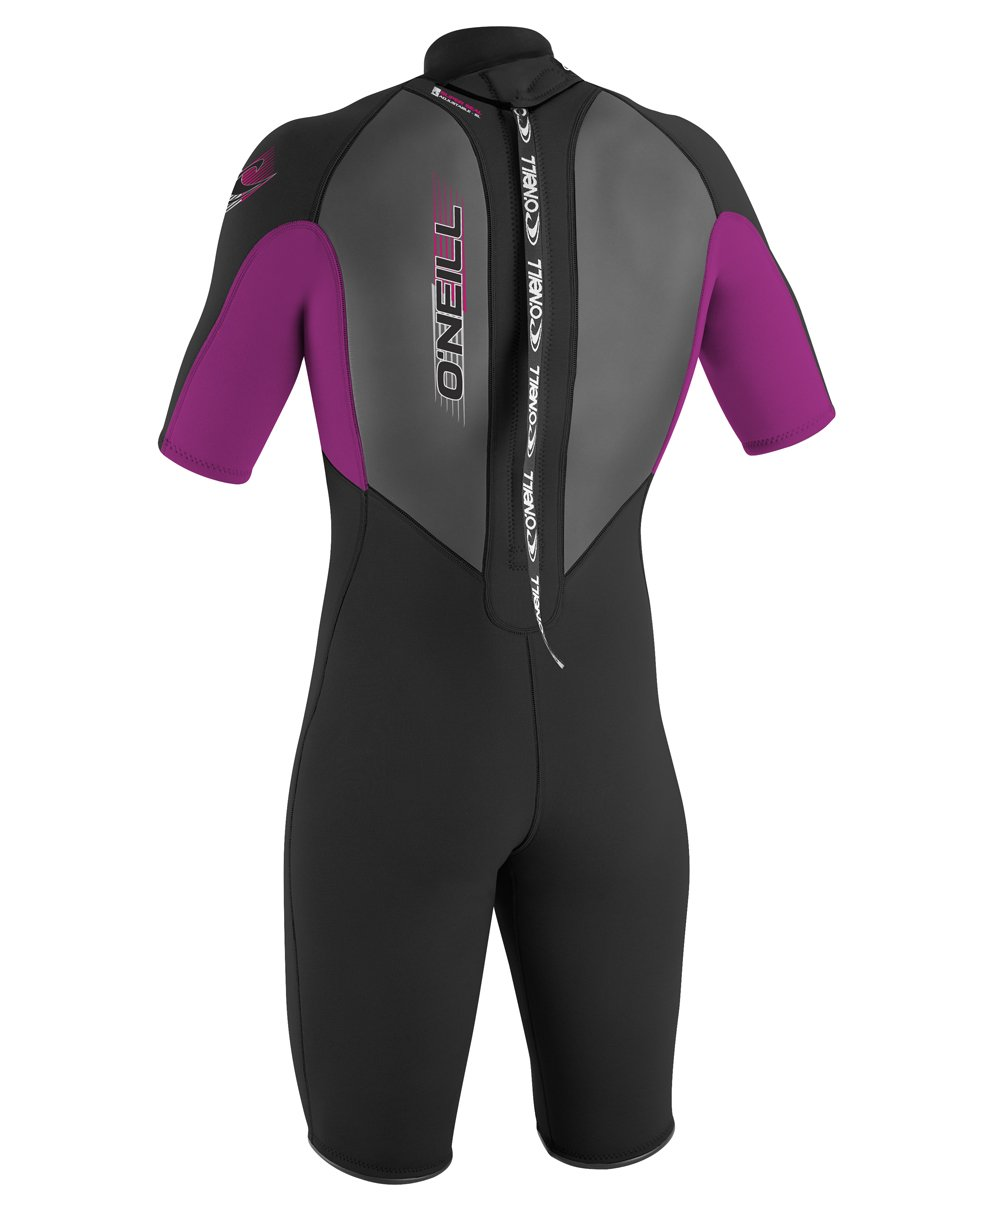 O'Neill Youth Reactor 2mm Back Zip Spring Wetsuit, Black/Pink/Black, 6 by O'Neill Wetsuits (Image #3)